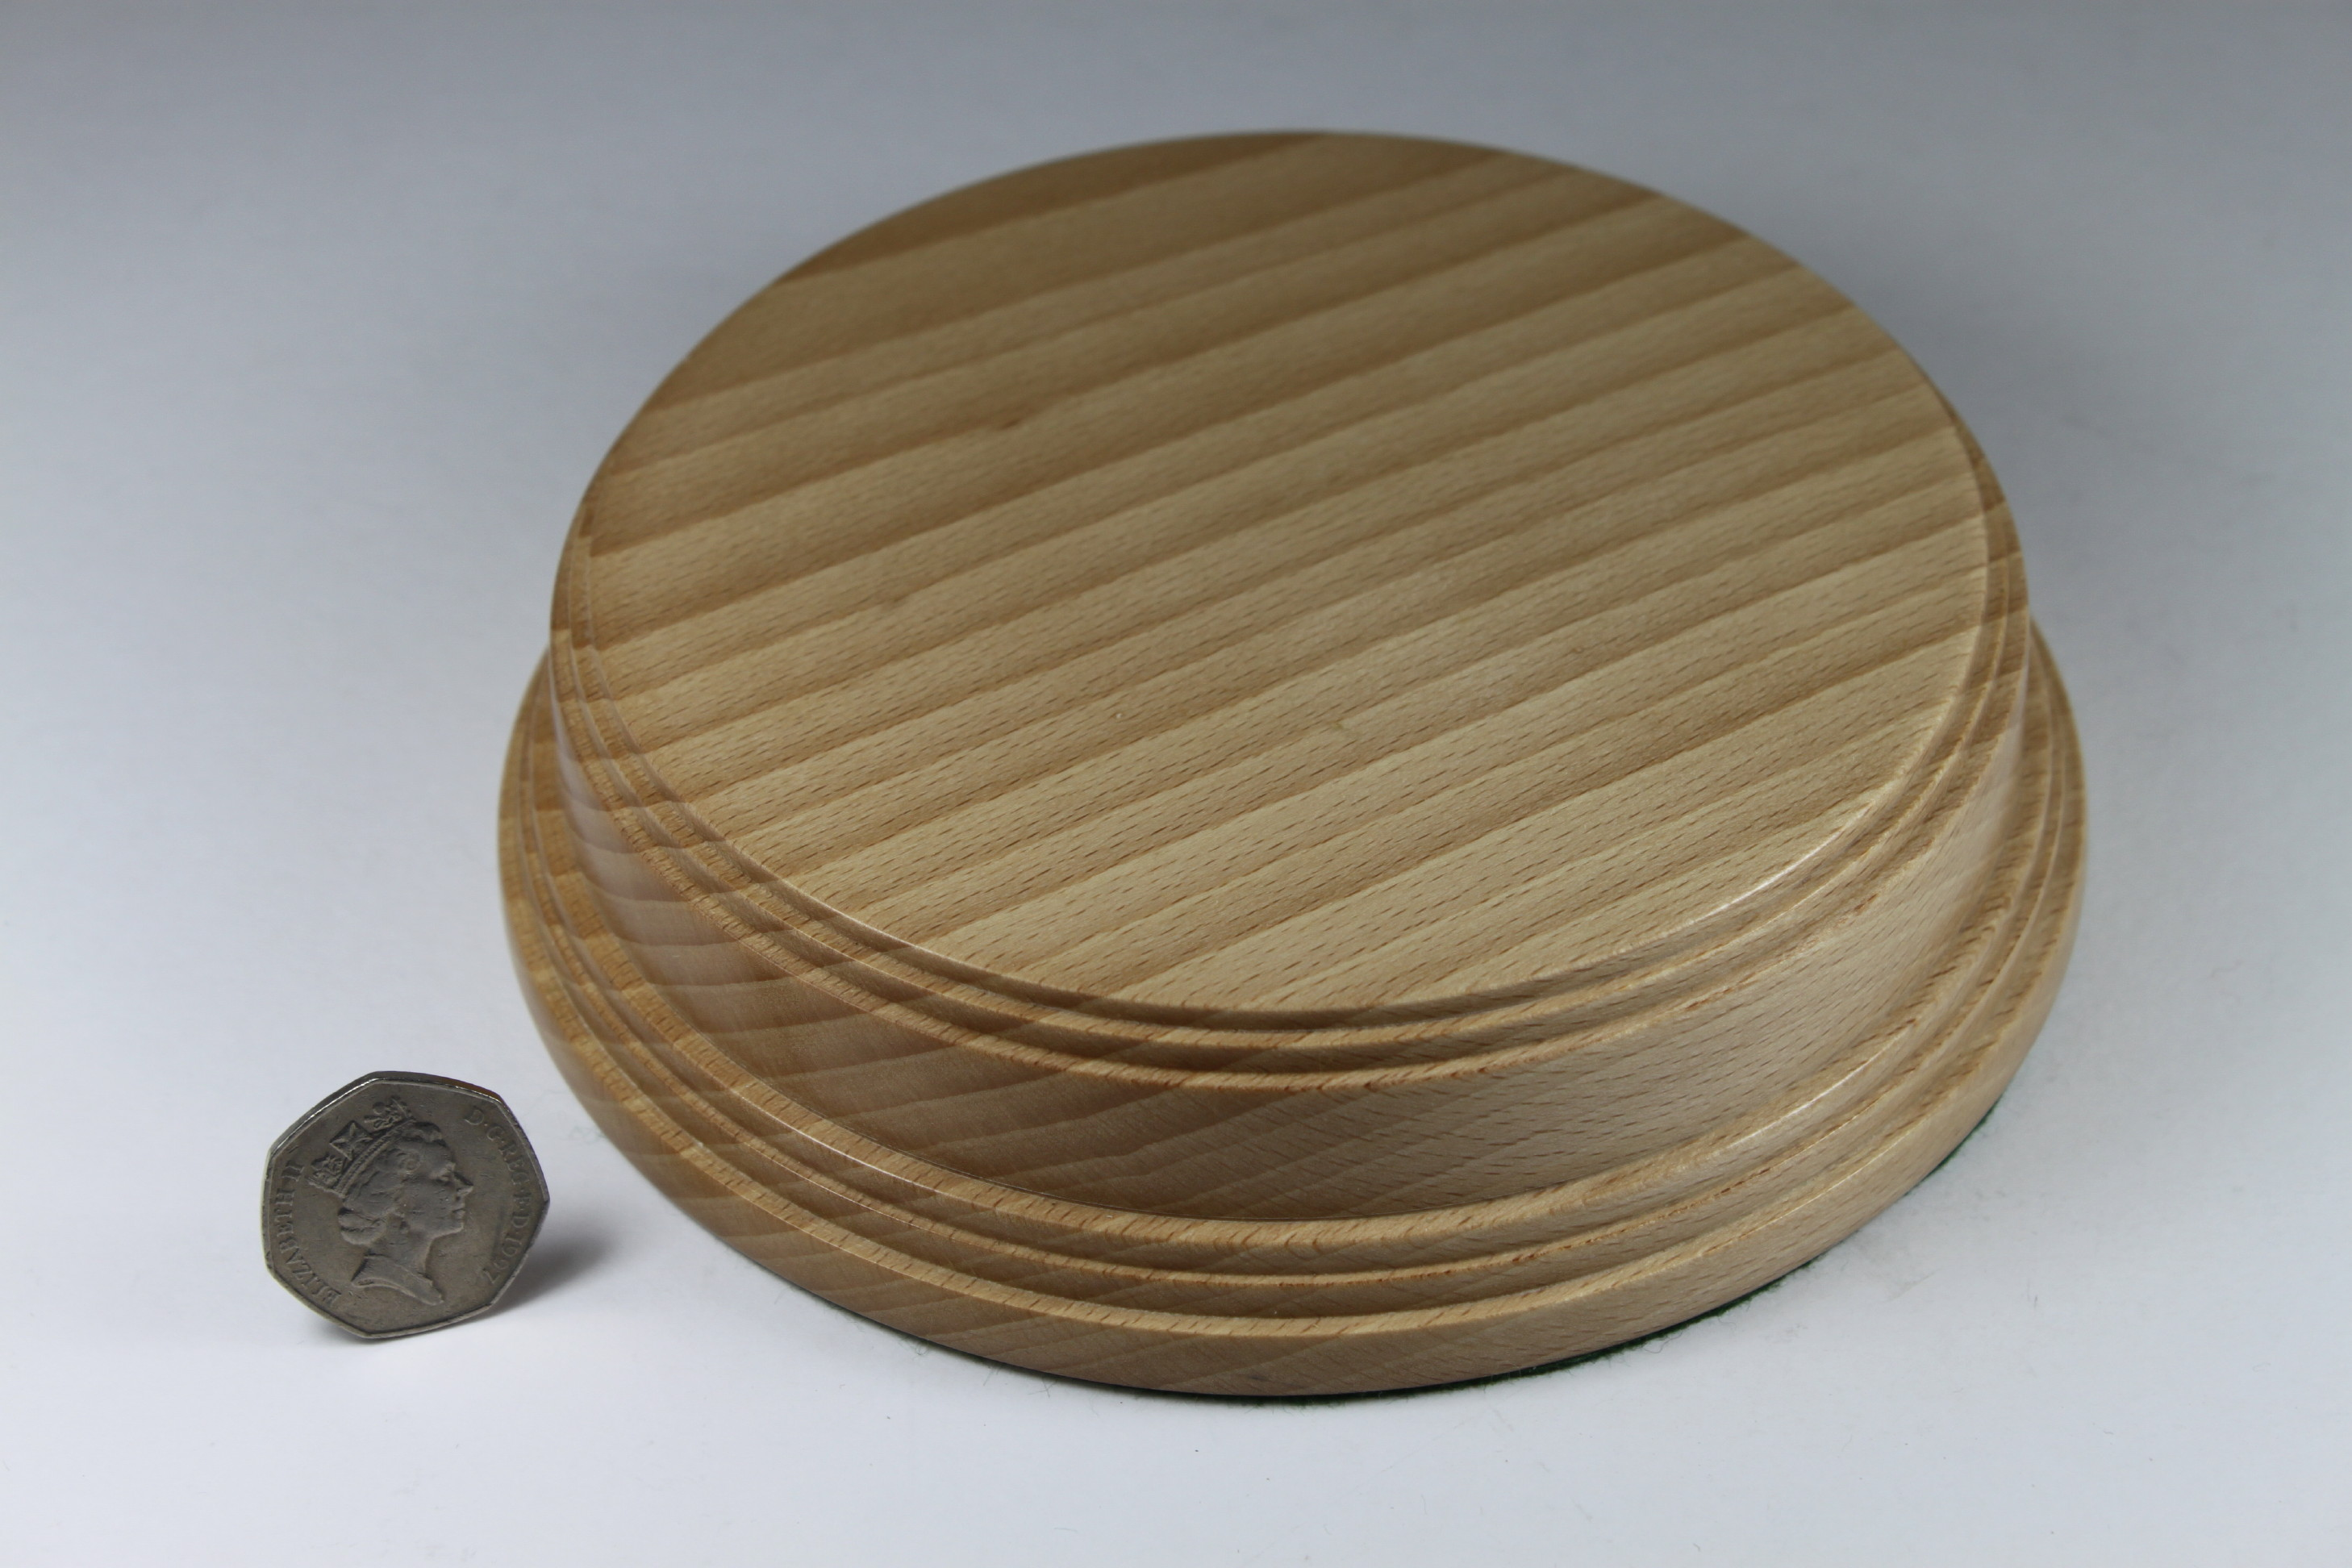 Ash Model Base 40mm High with a Display area of 140mm